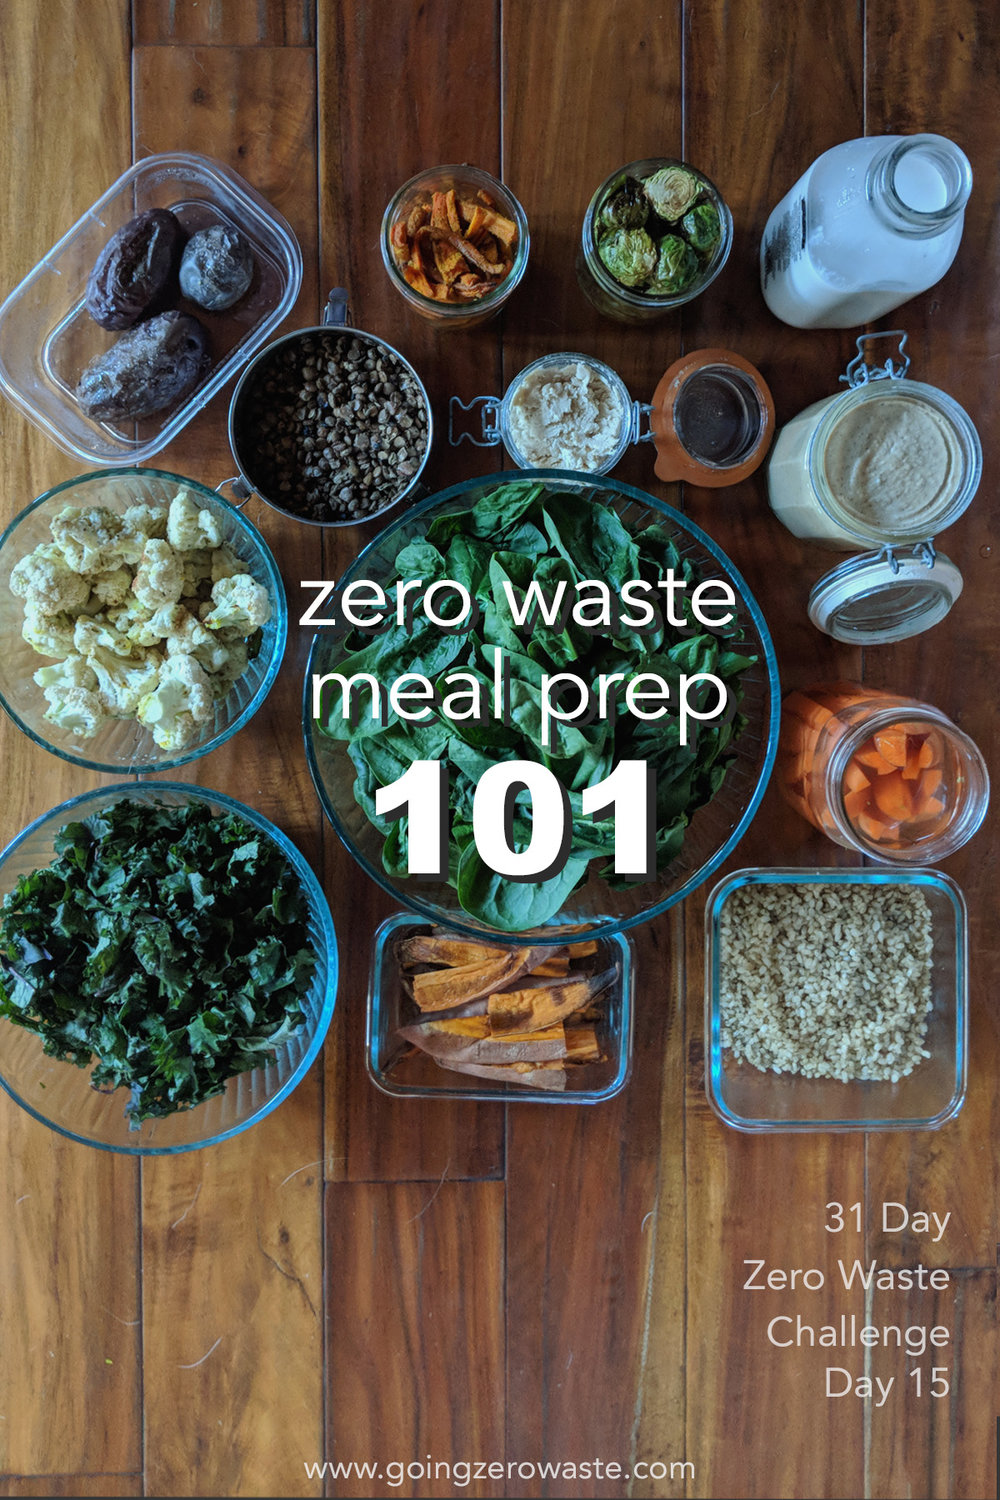 Zero waste meal prep 101 from www.goingzerowaste.com day 15 of the zero waste challenge #ecofriendly #zerowastechallenge #mealprep